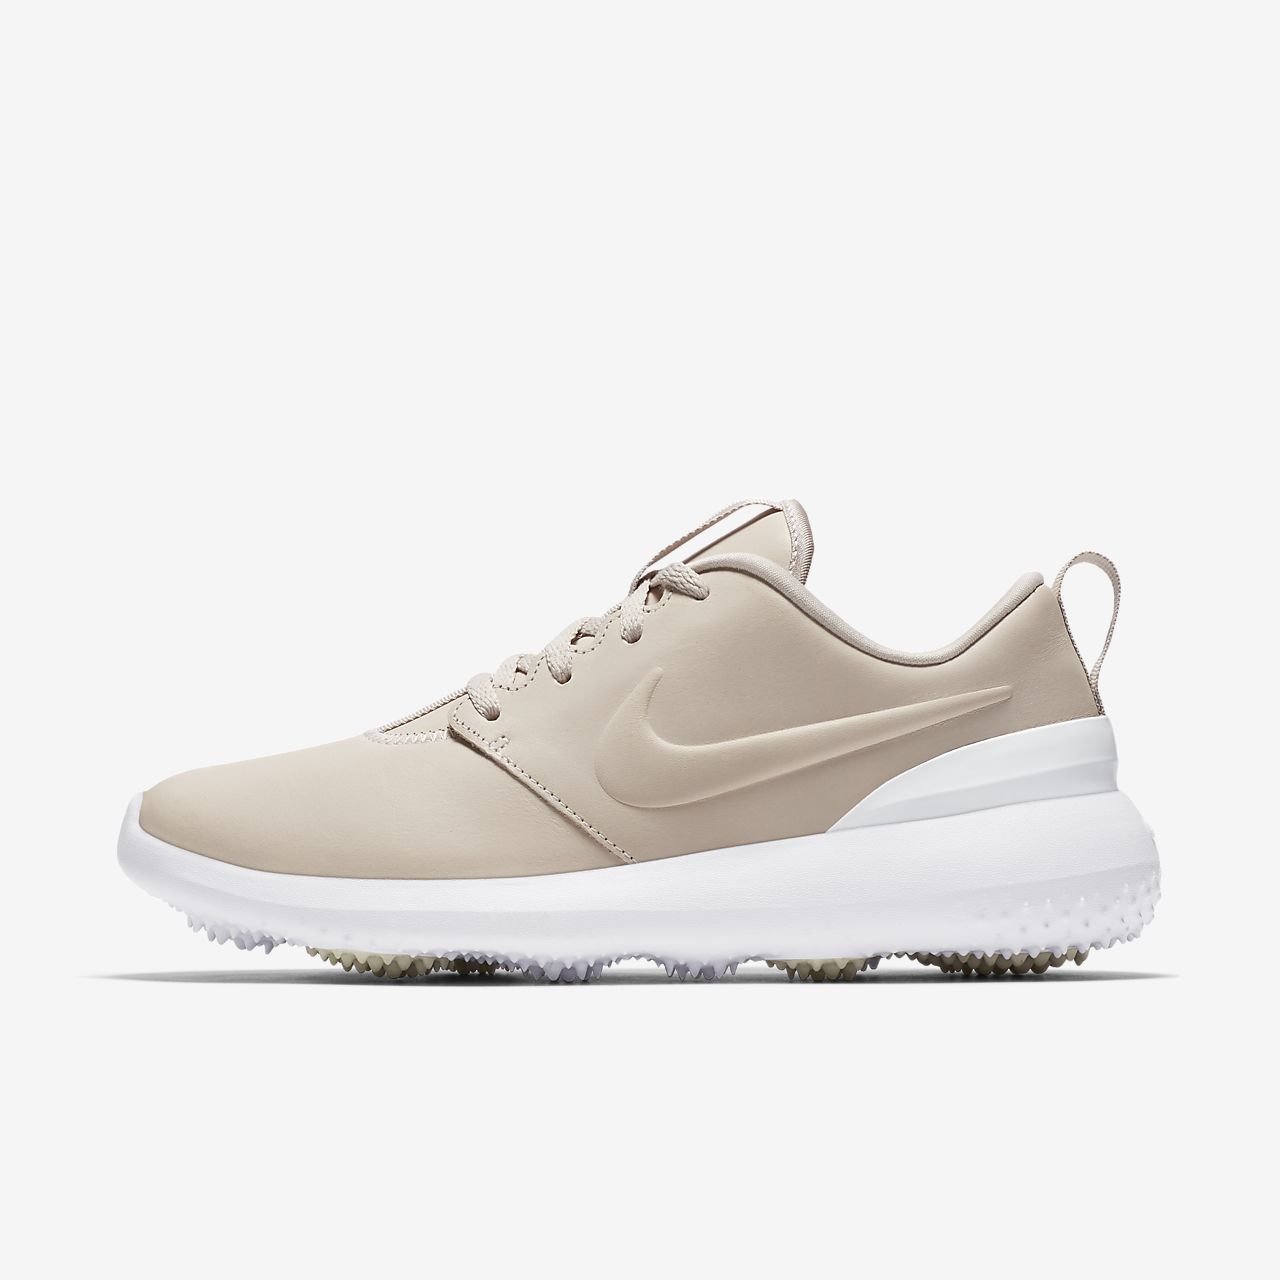 Nike Roshe Women   Nike Sneakers Online at Best Prices ... 495aeb6d2